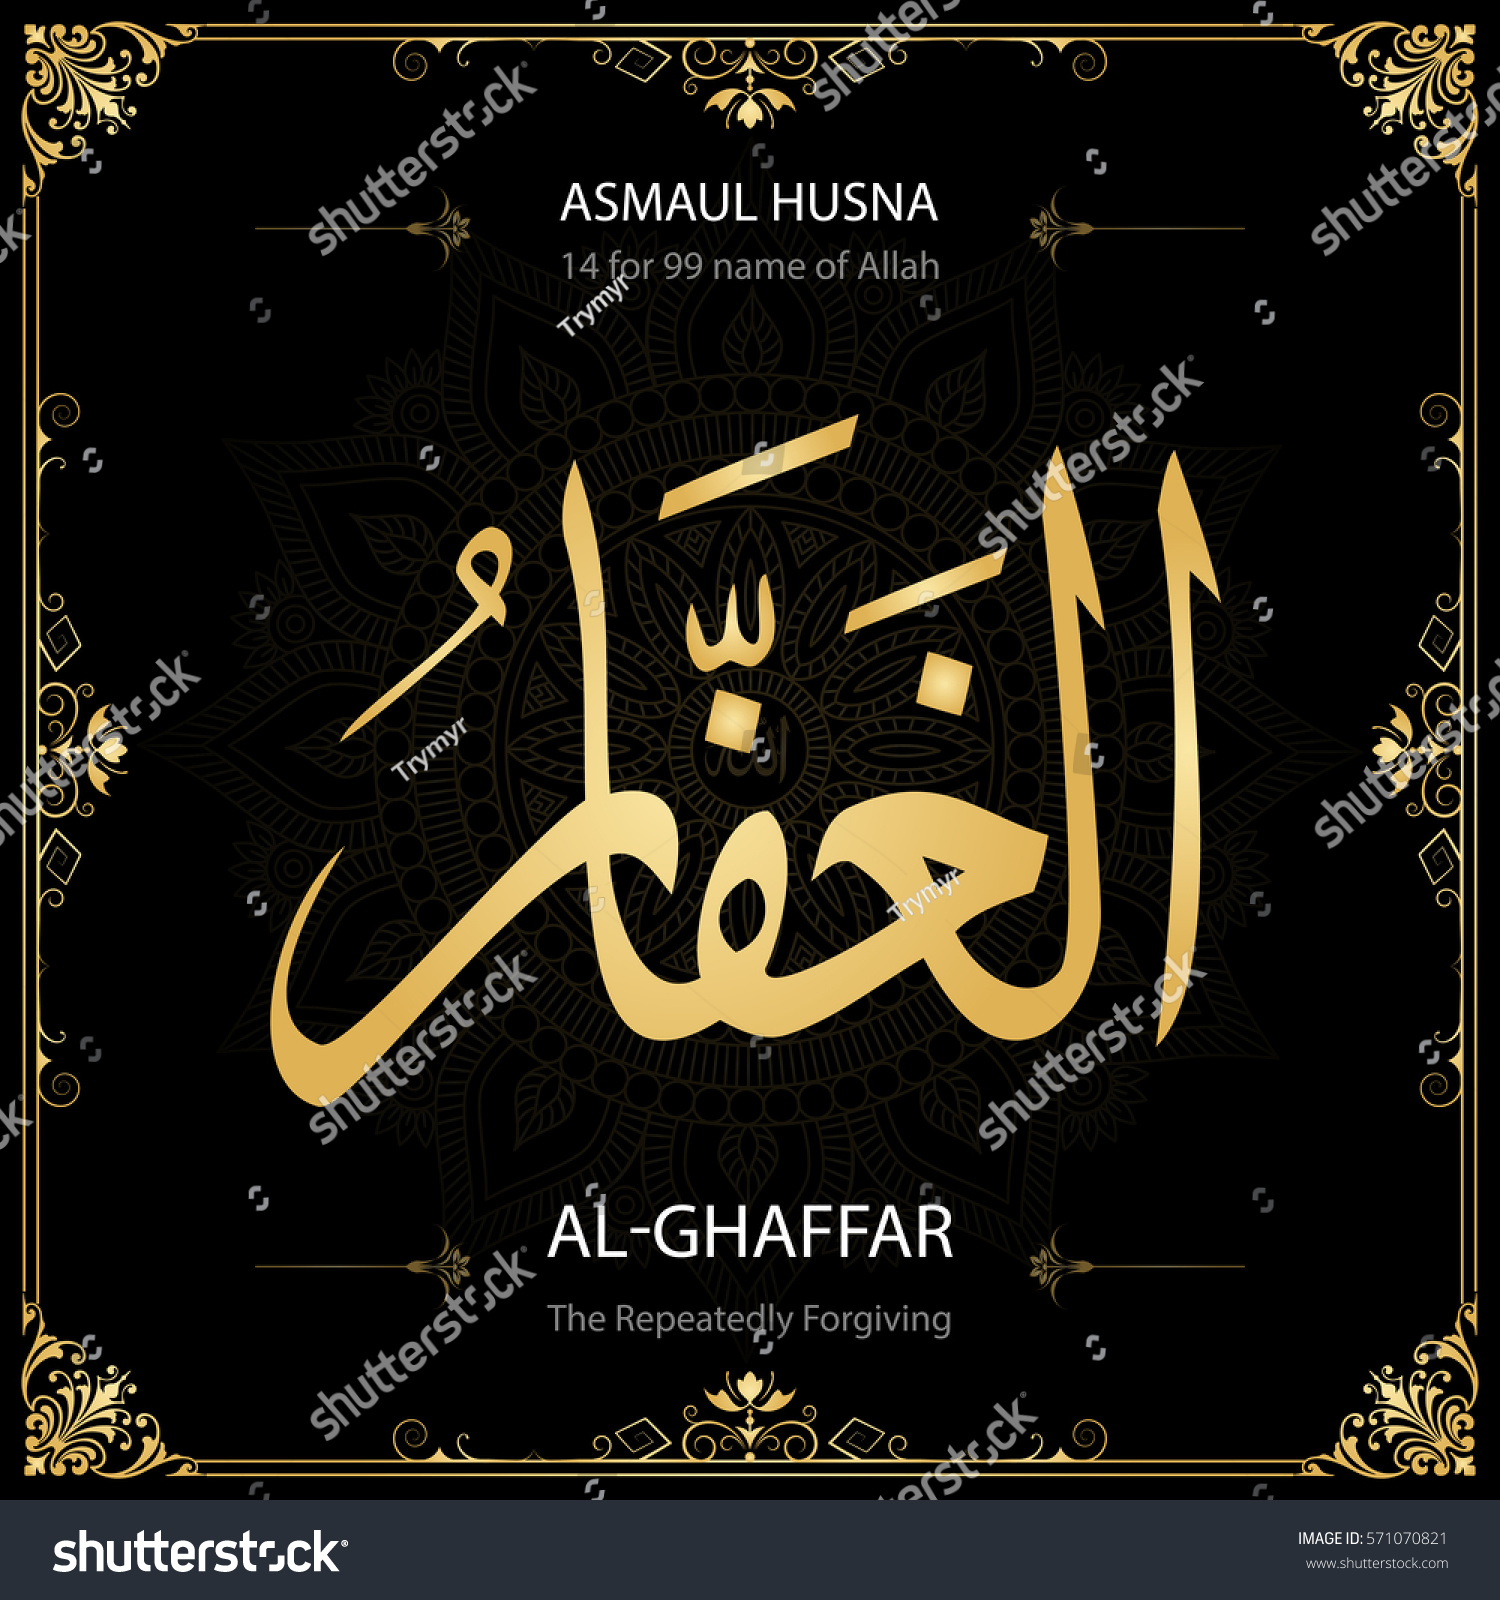 Alghaffar Repeatedly Forgiving Asmaul Husna 99 Stock Vector